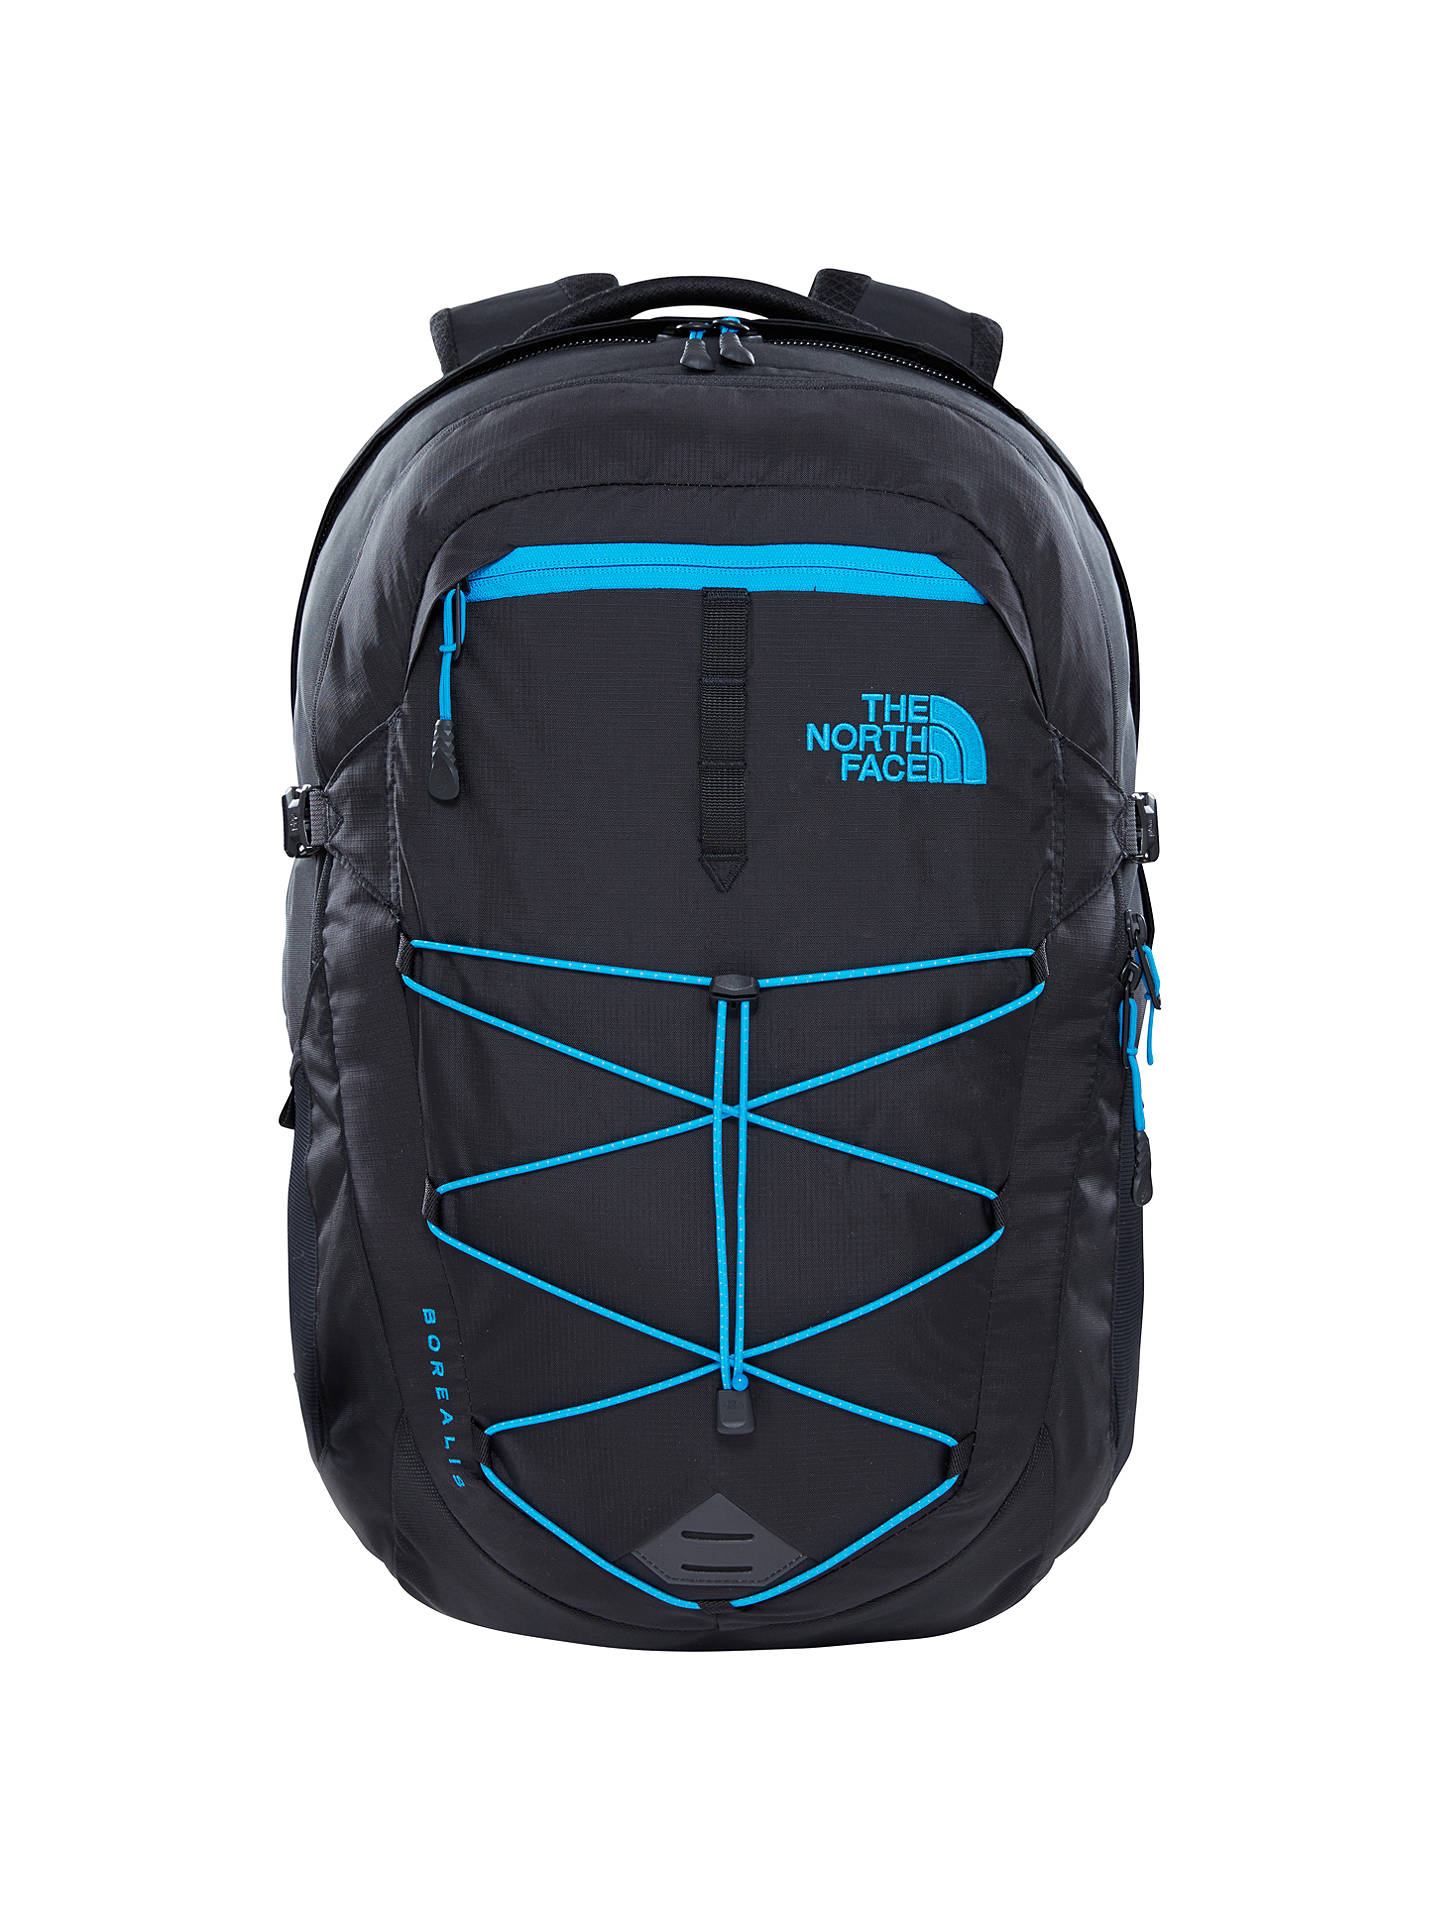 8d145e634 The North Face Borealis Backpack, Black/Blue at John Lewis & Partners